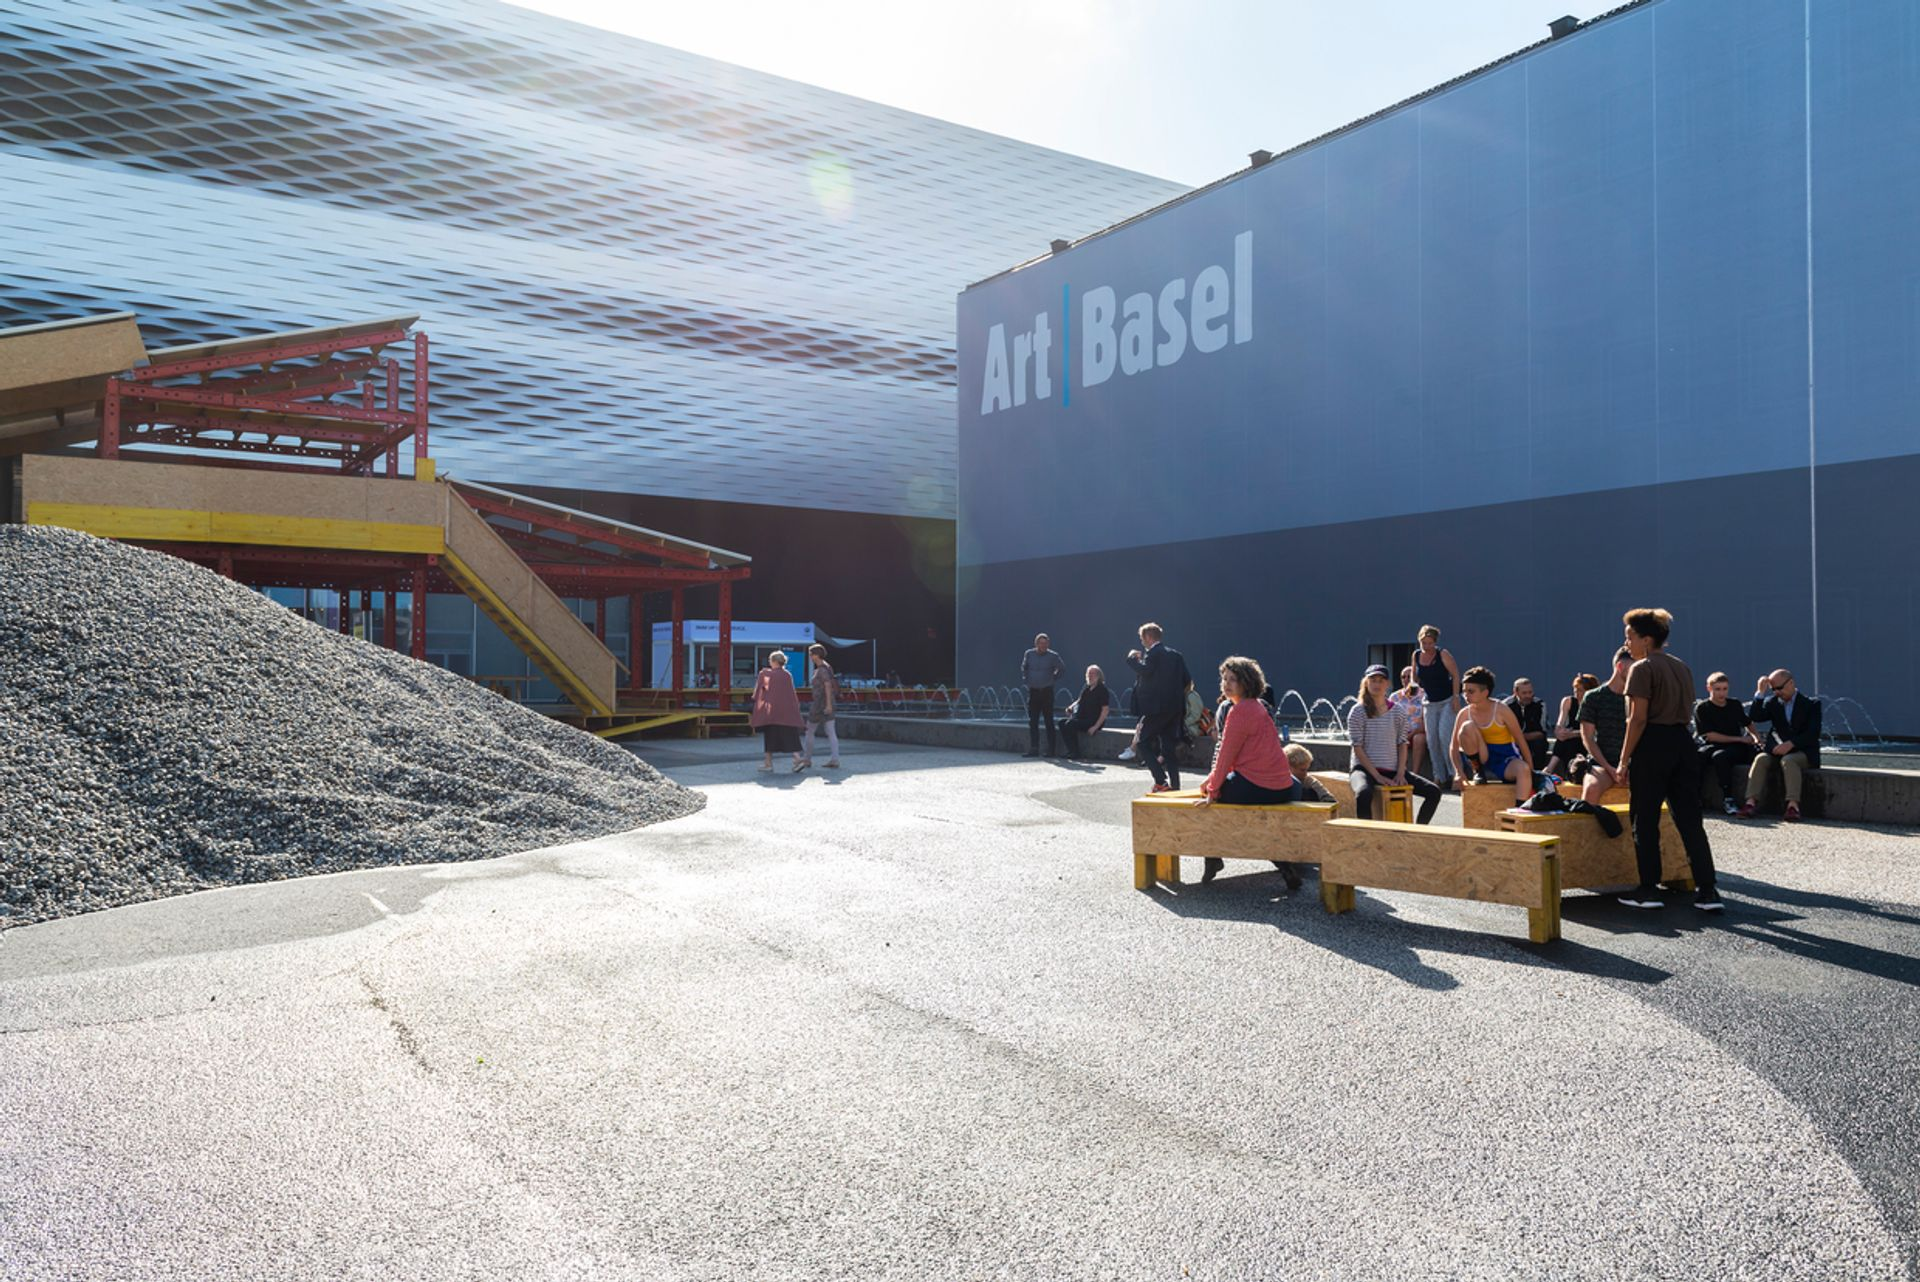 MCH Group said its Baselworld blowout this summer would not affect the Art Basel franchise, though its new investments in regional fairs now hits rock bottom © Art Basel and Creative Time